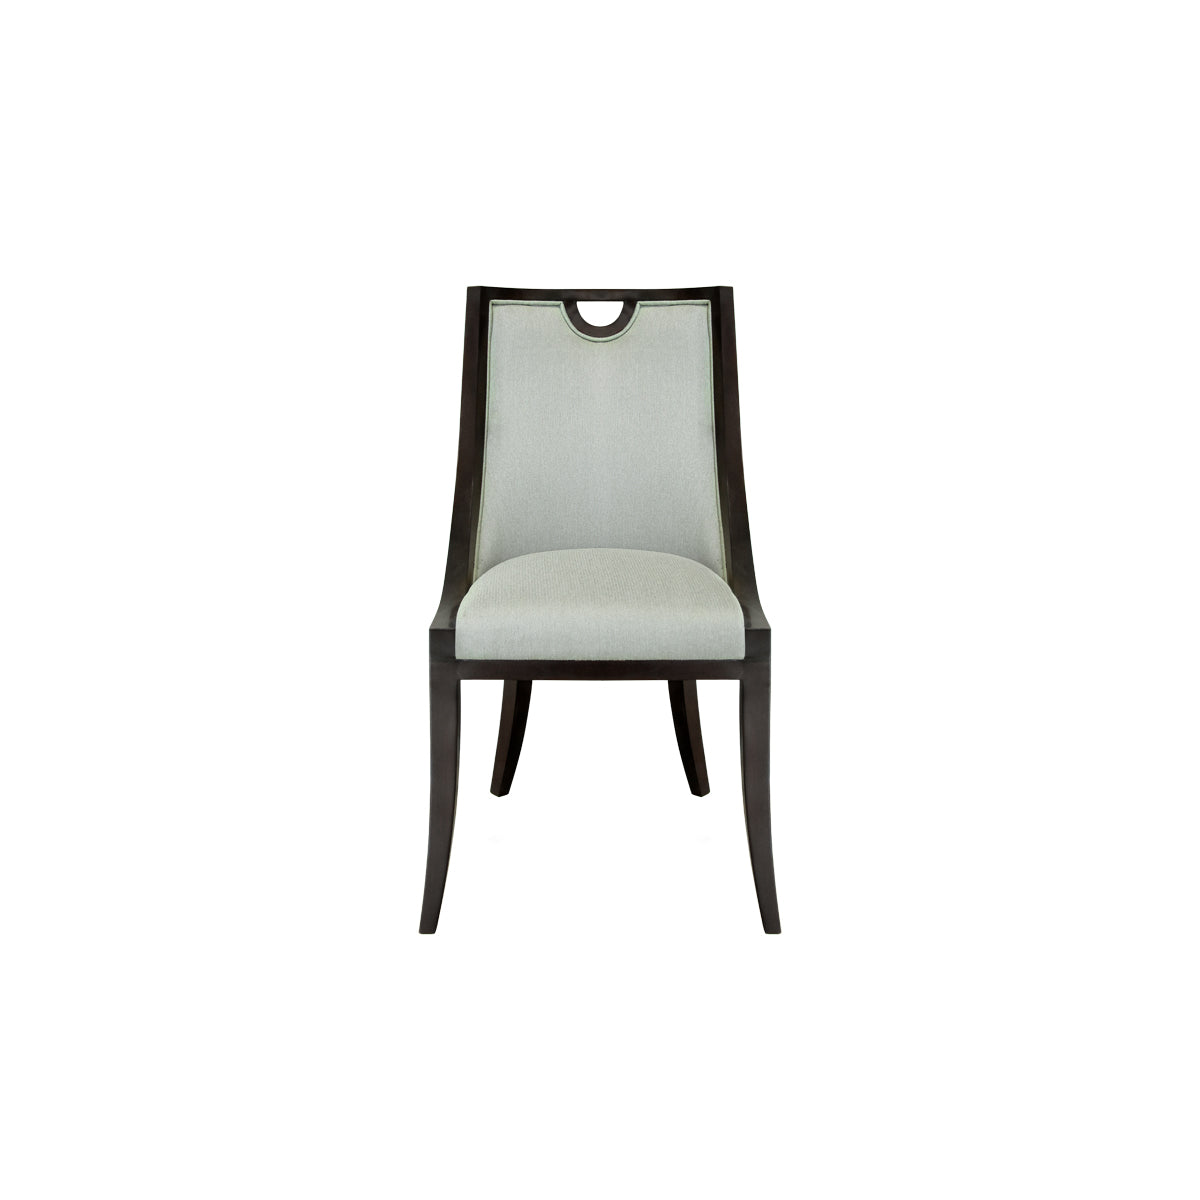 dining chair with wooden trim, indonesian furniture